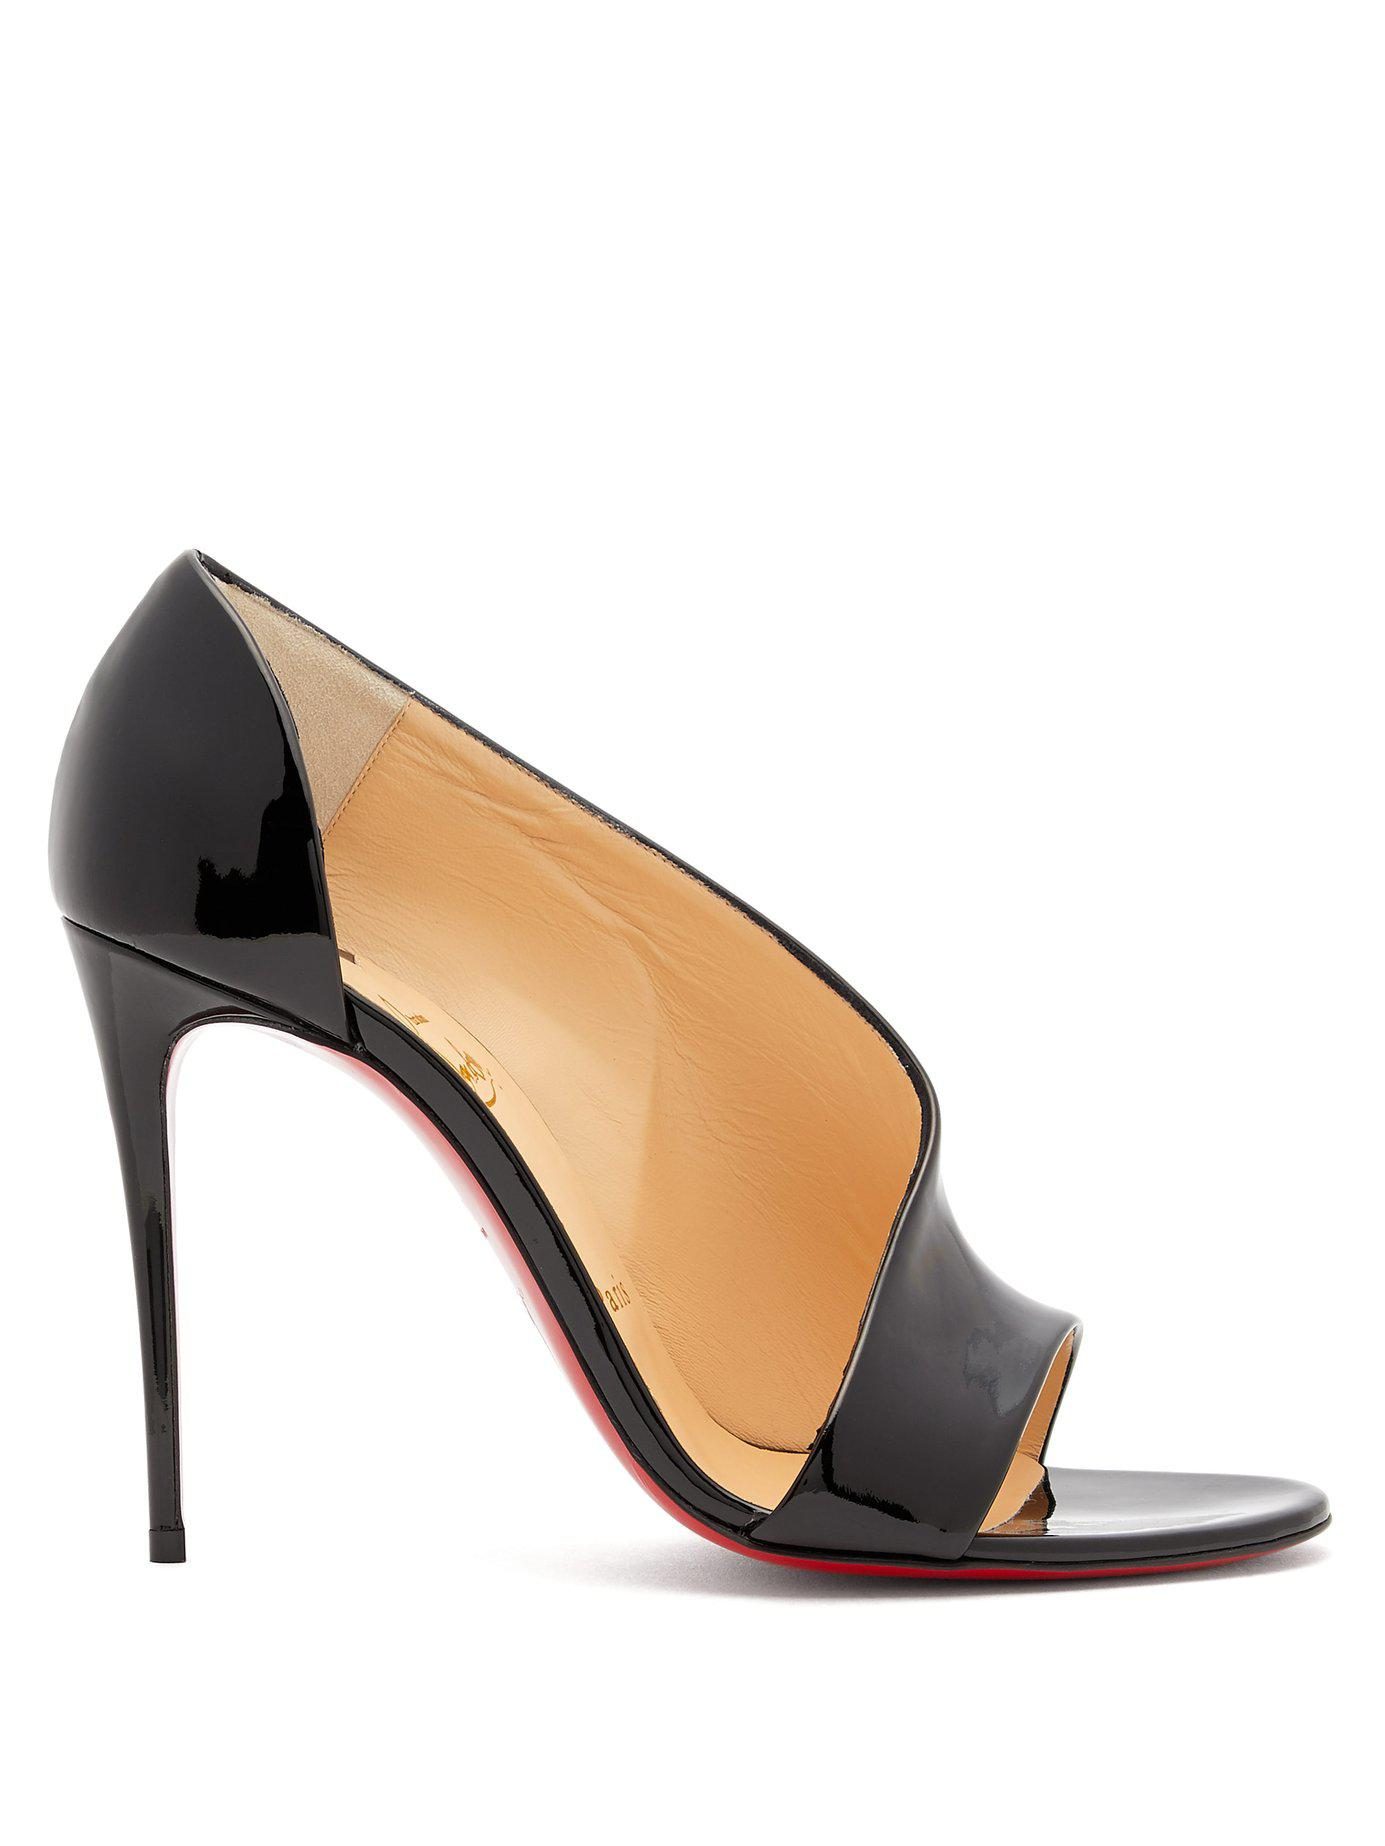 b4feae6ab0c Lyst - Christian Louboutin Phoebe 100 Patent Leather Pumps in Black ...